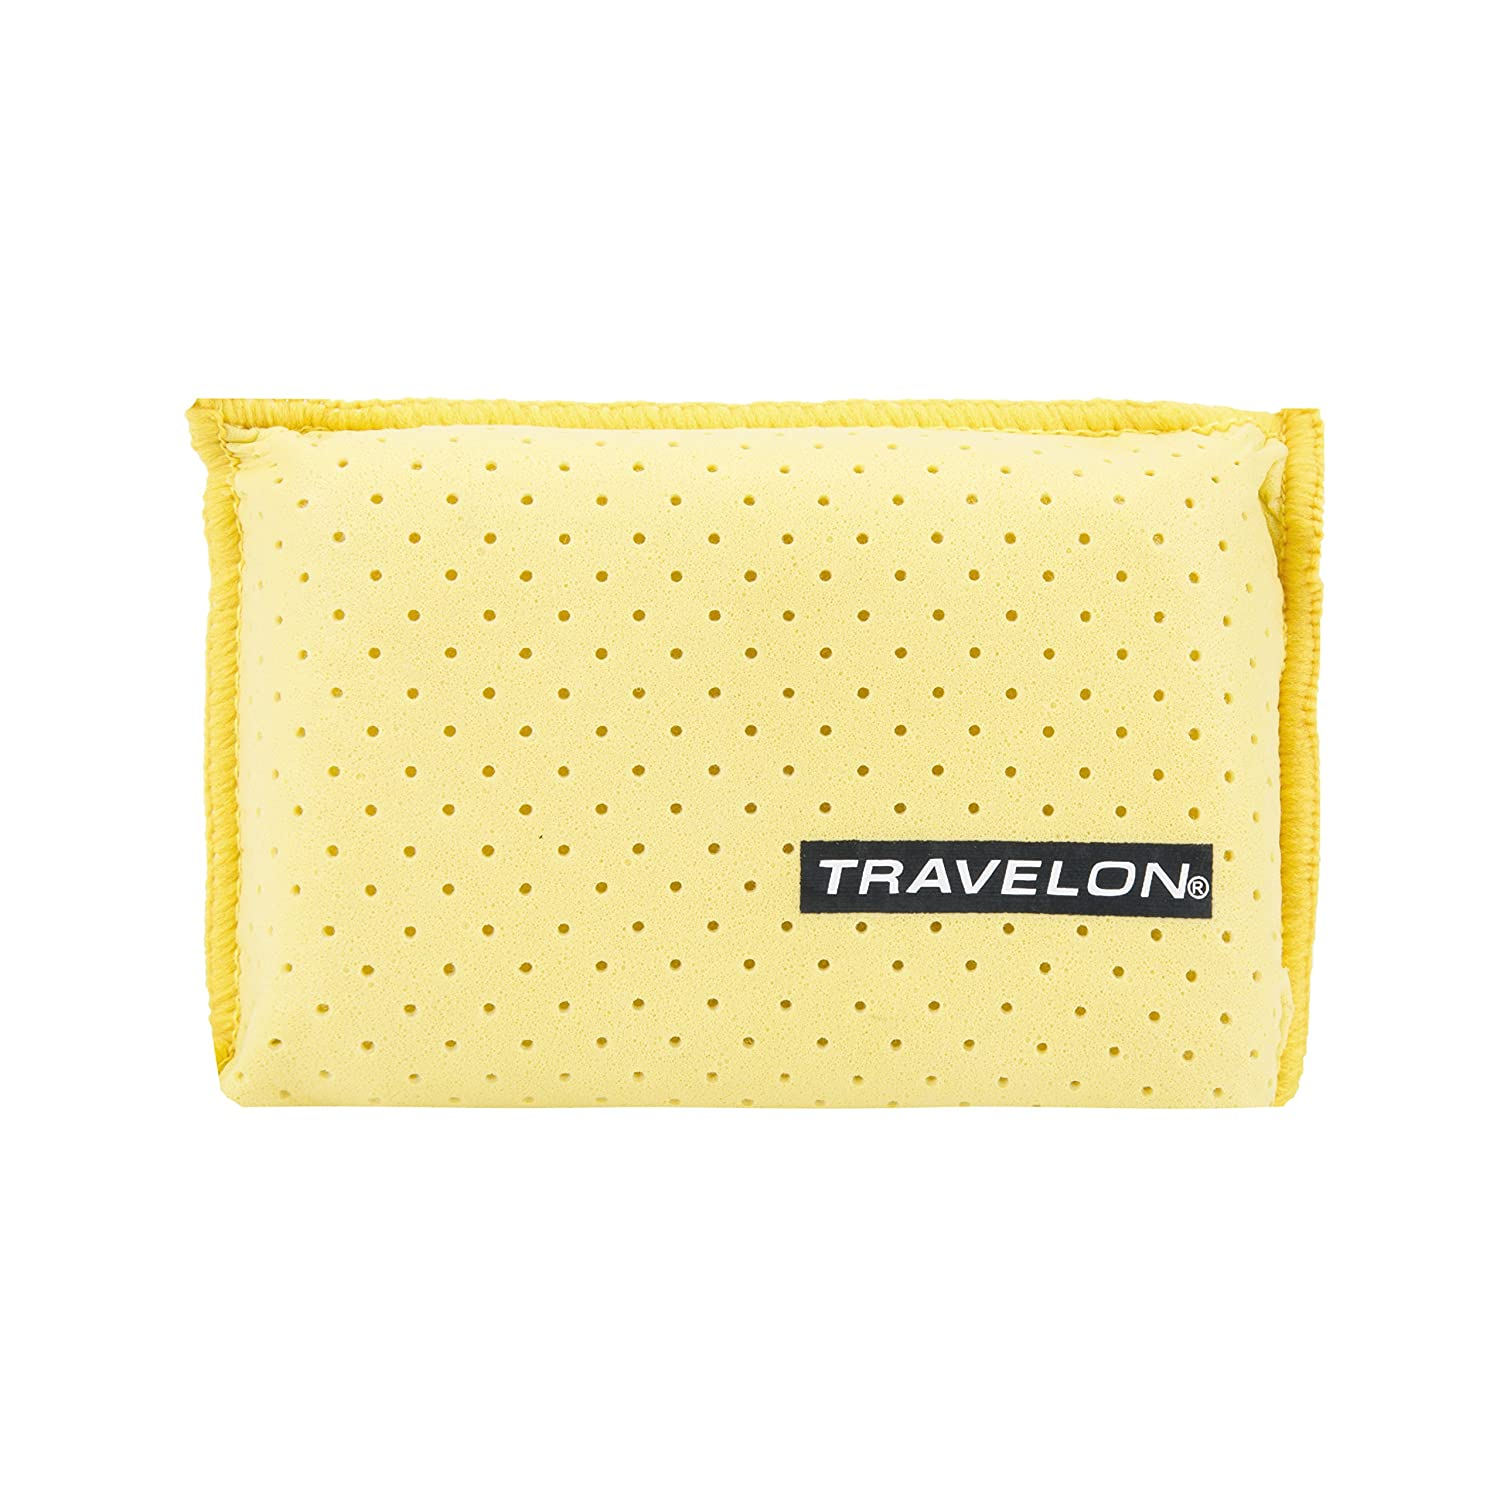 Travelon Windshield Cleaner and Defogger, Yellow 19005-650